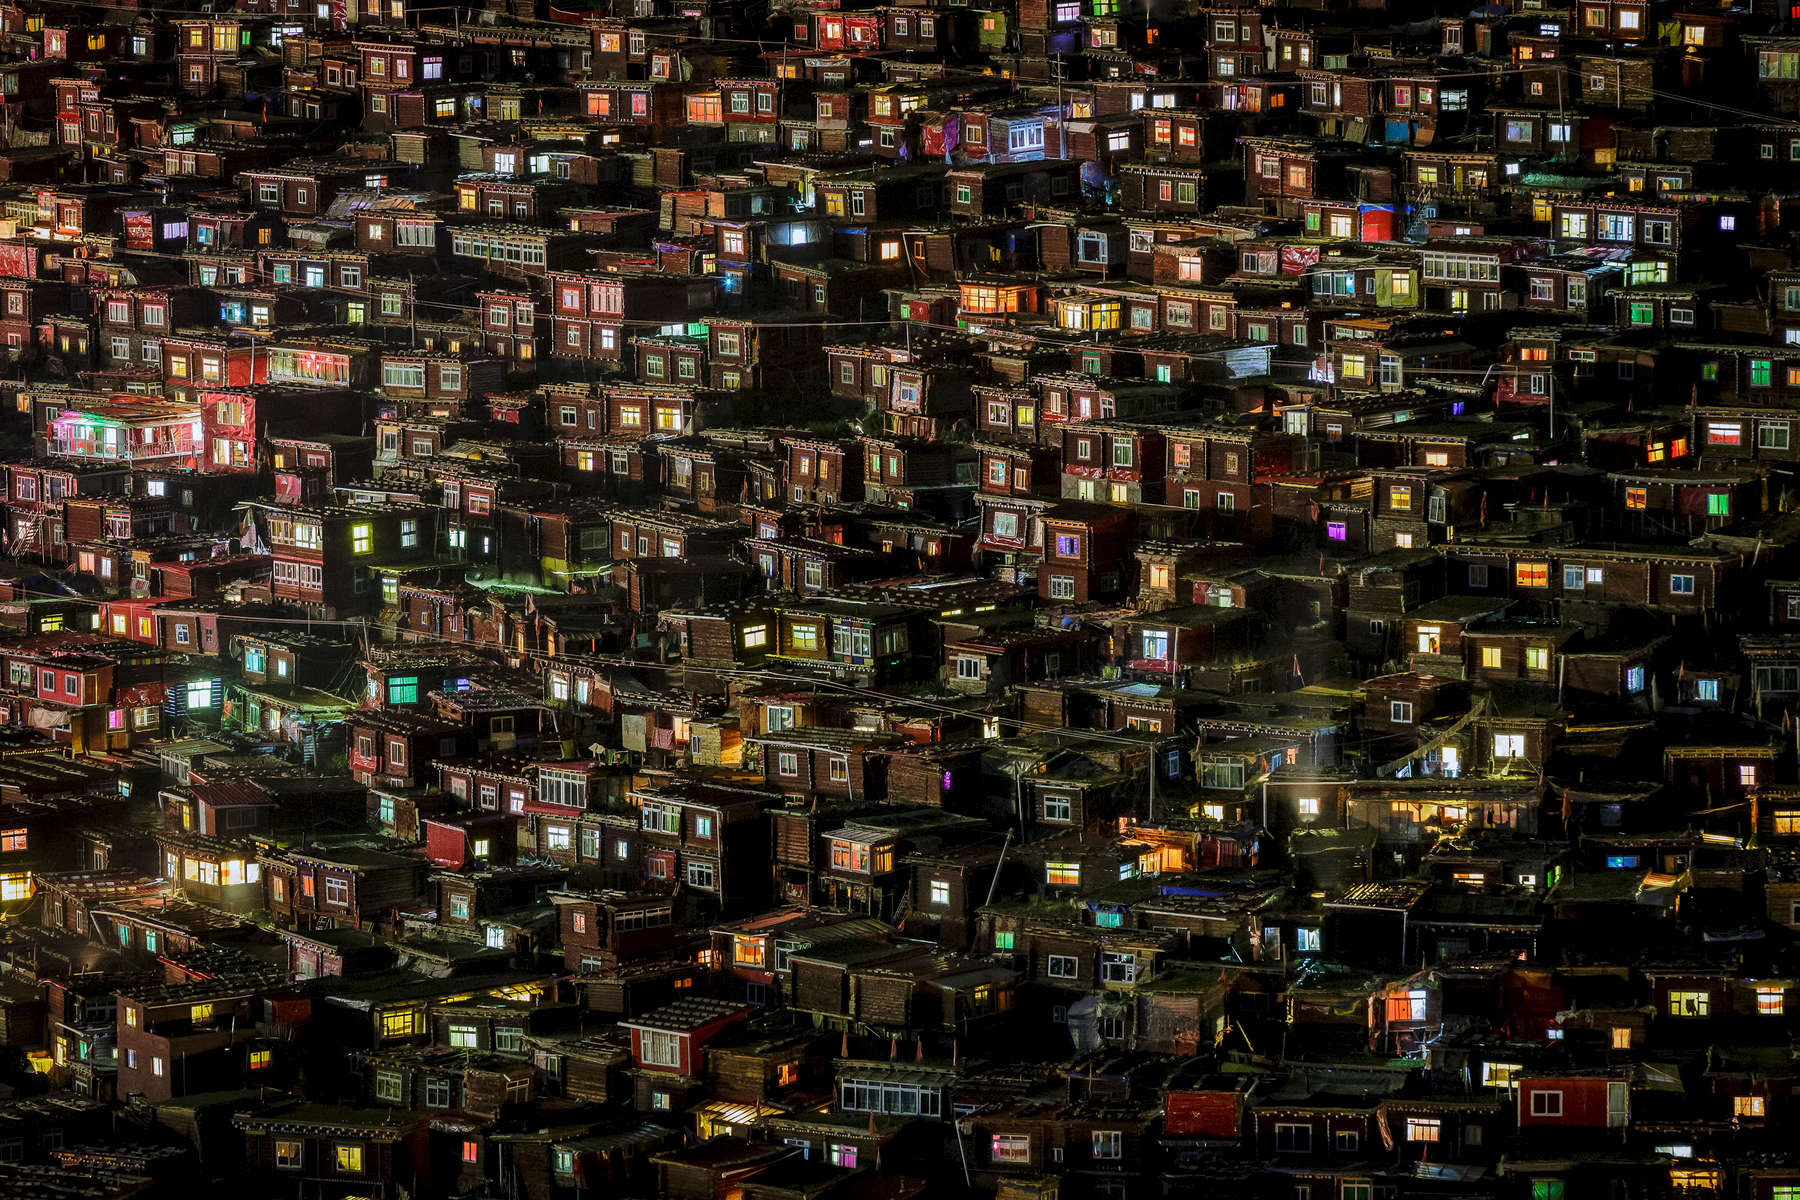 The surreal Larung Gar encampment at night.  The couloured glass or plastic windows of the huts make for an impressive sight as night falls.